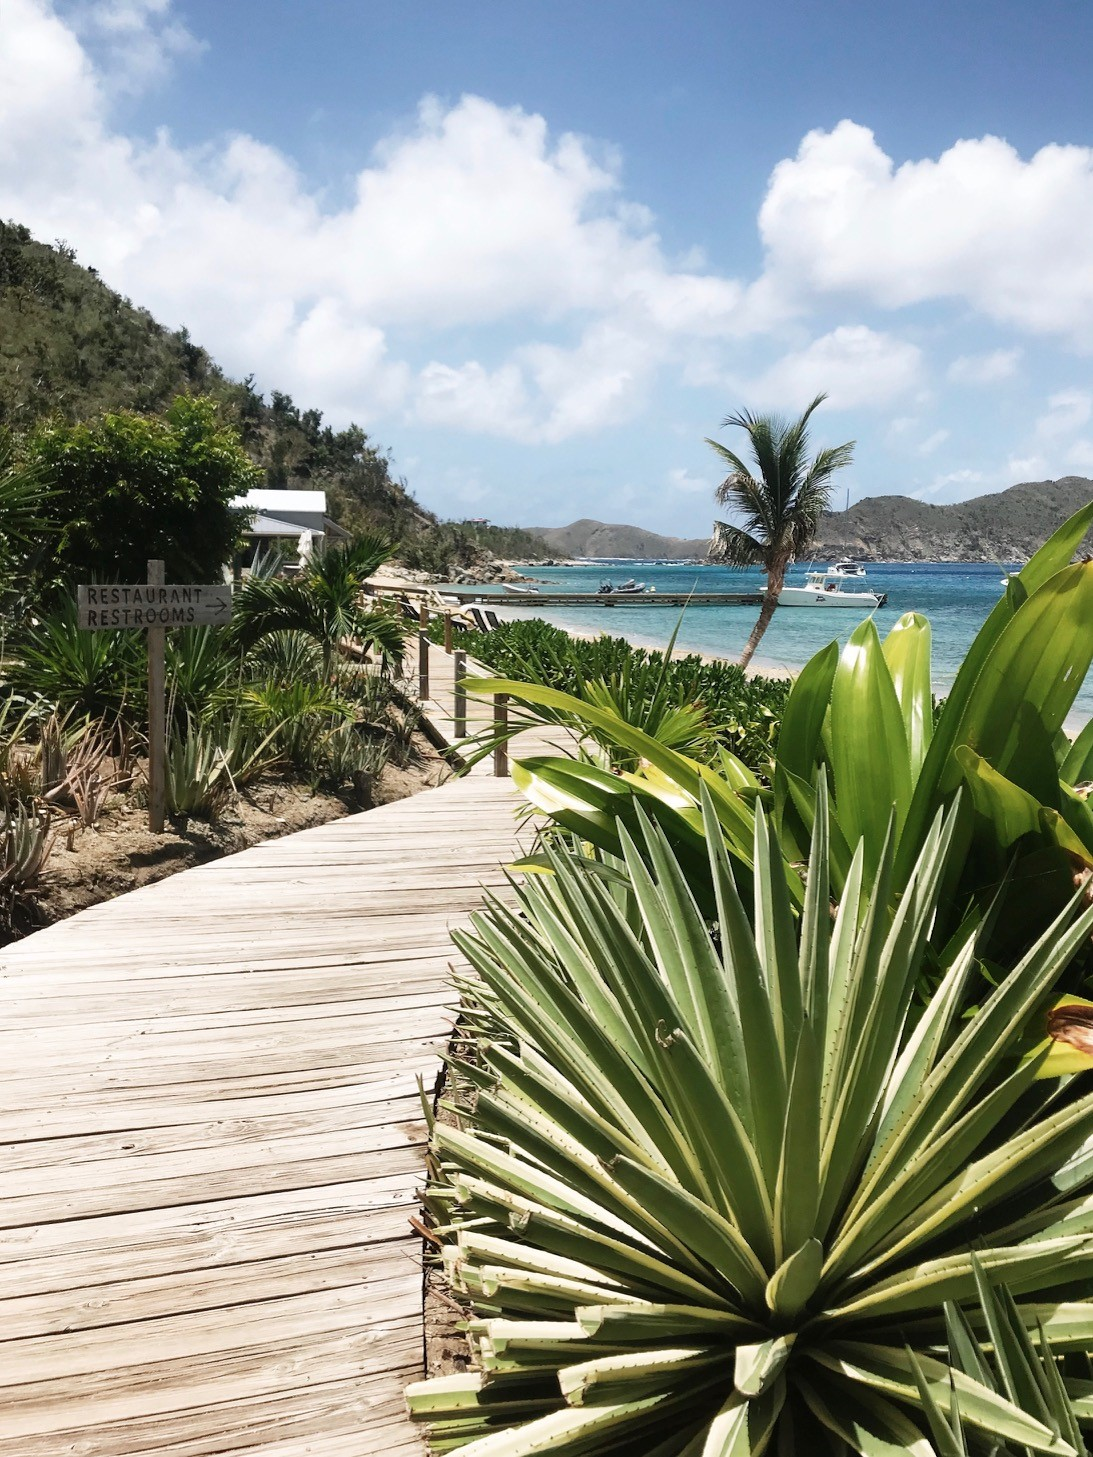 The definitive BVI restaurant guide - all the tips on where to eat in the BVI post-Irma